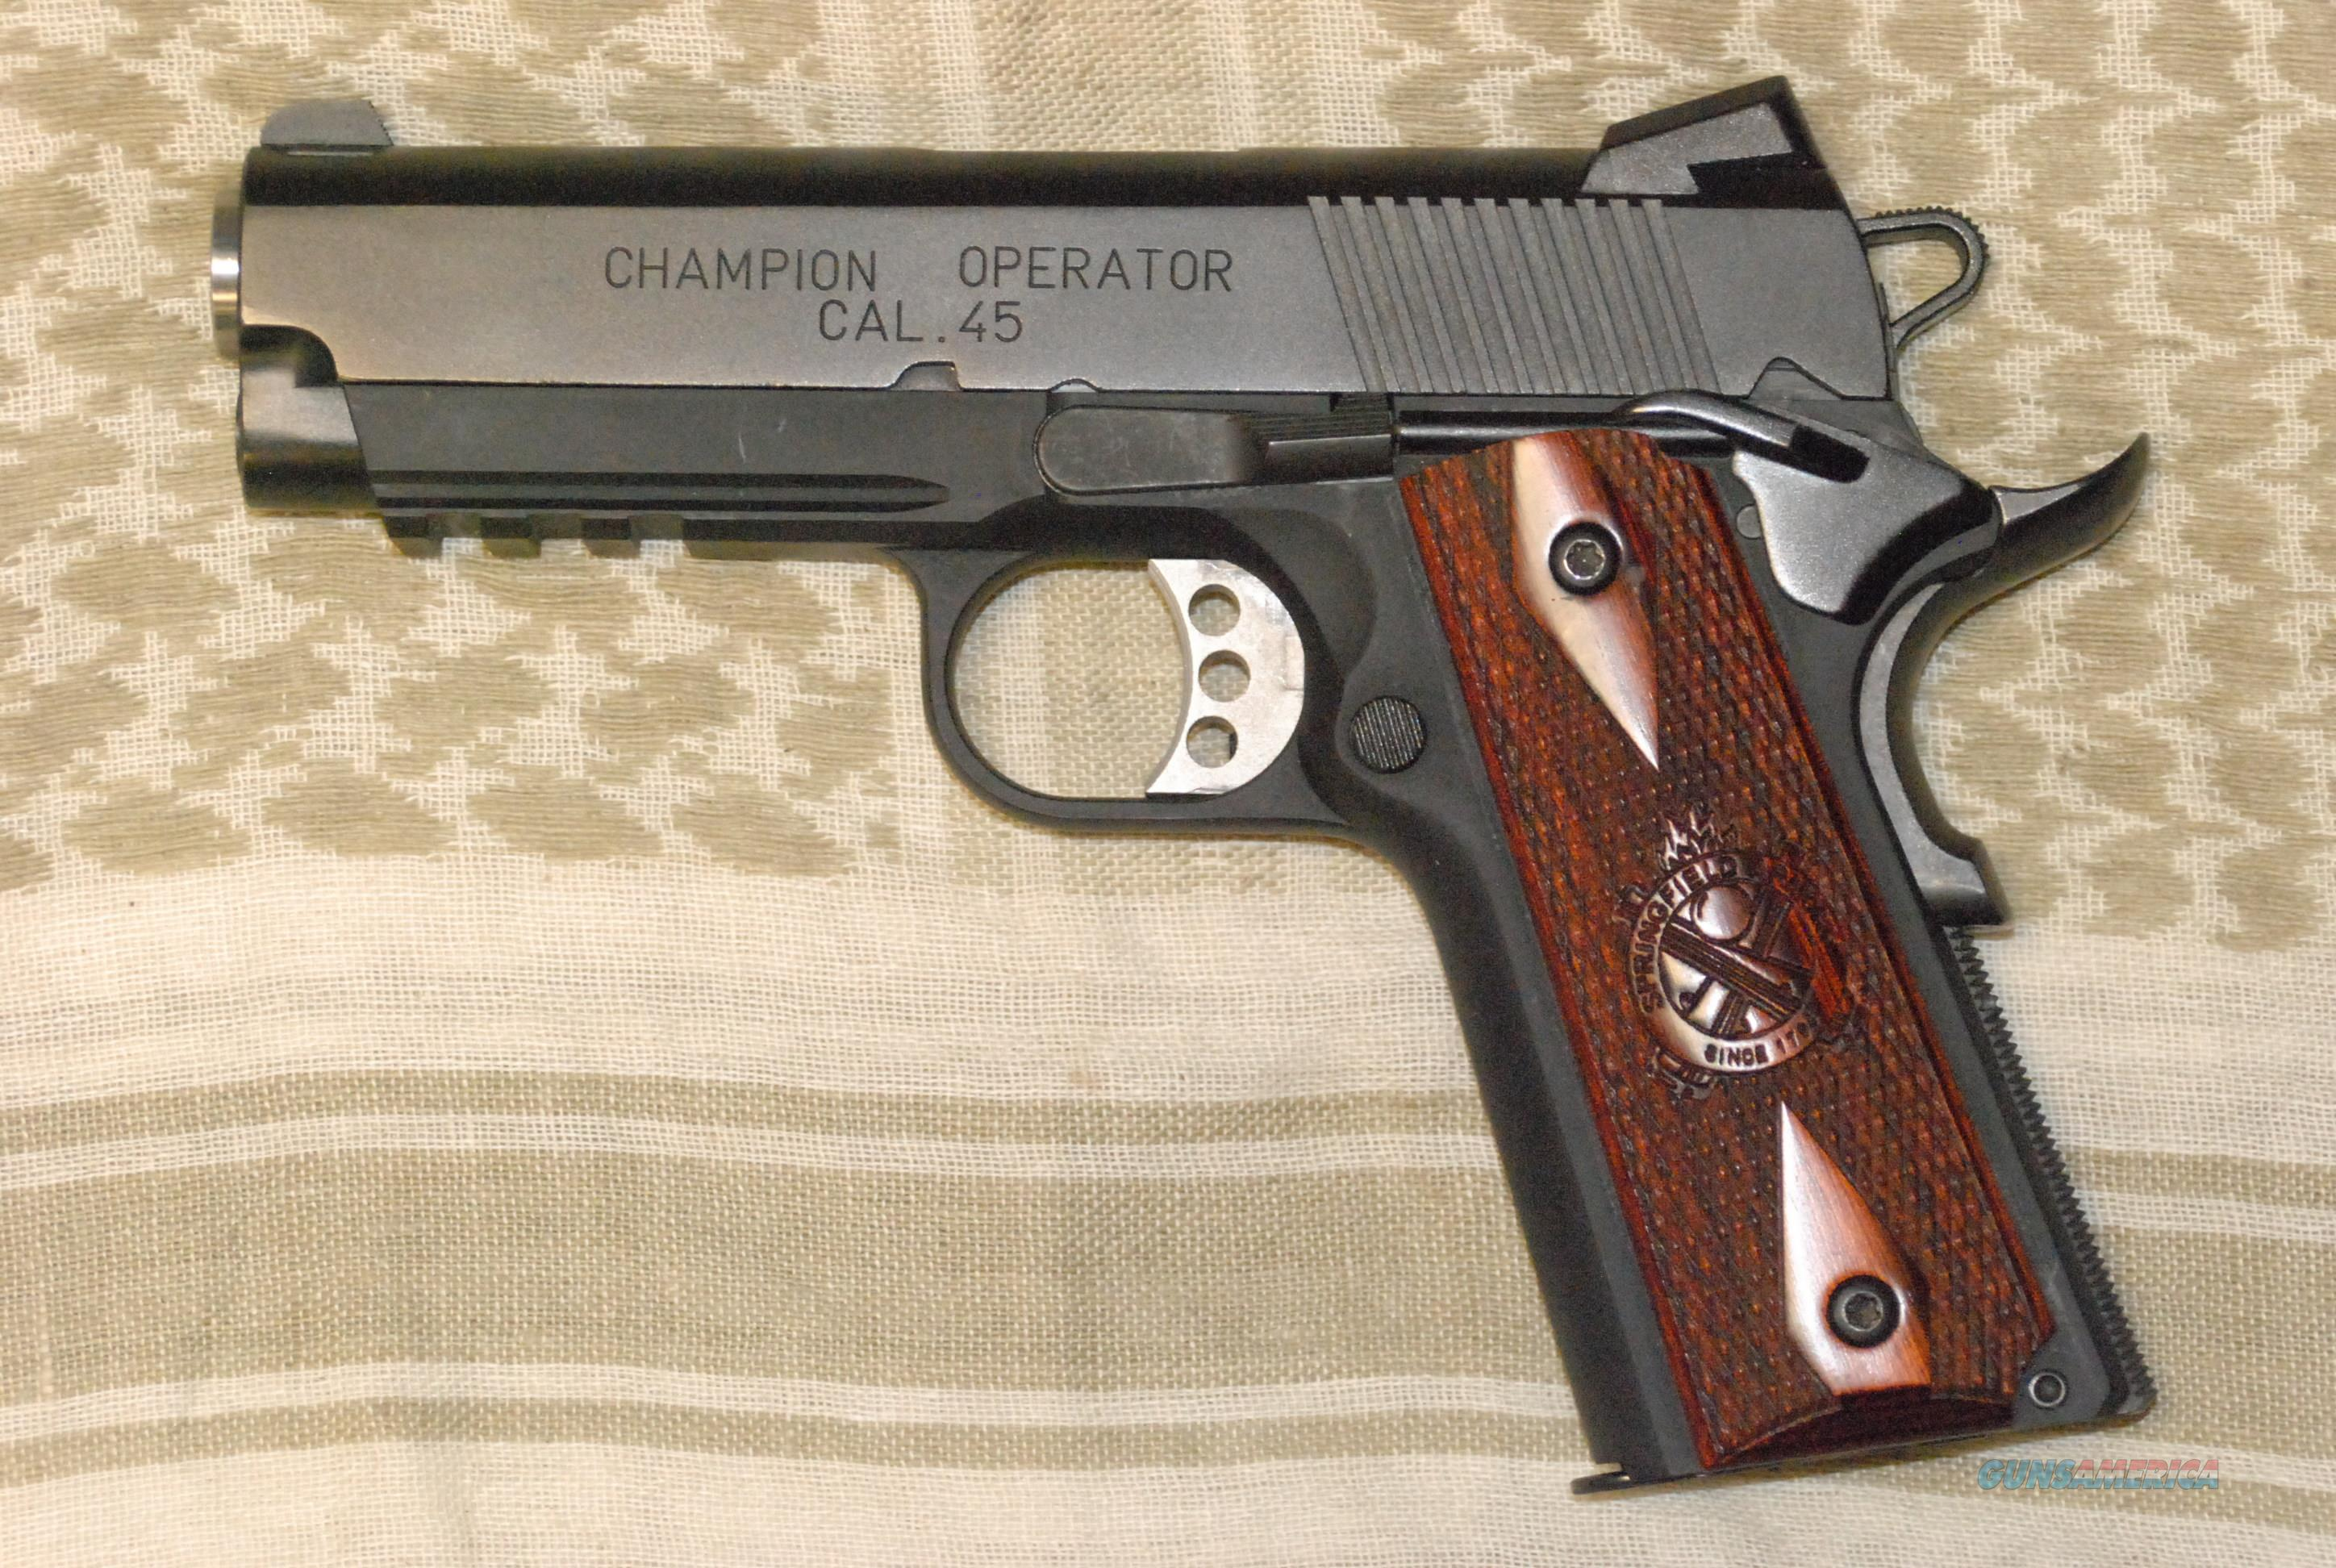 1911 operator for sale - Black friday deal sears